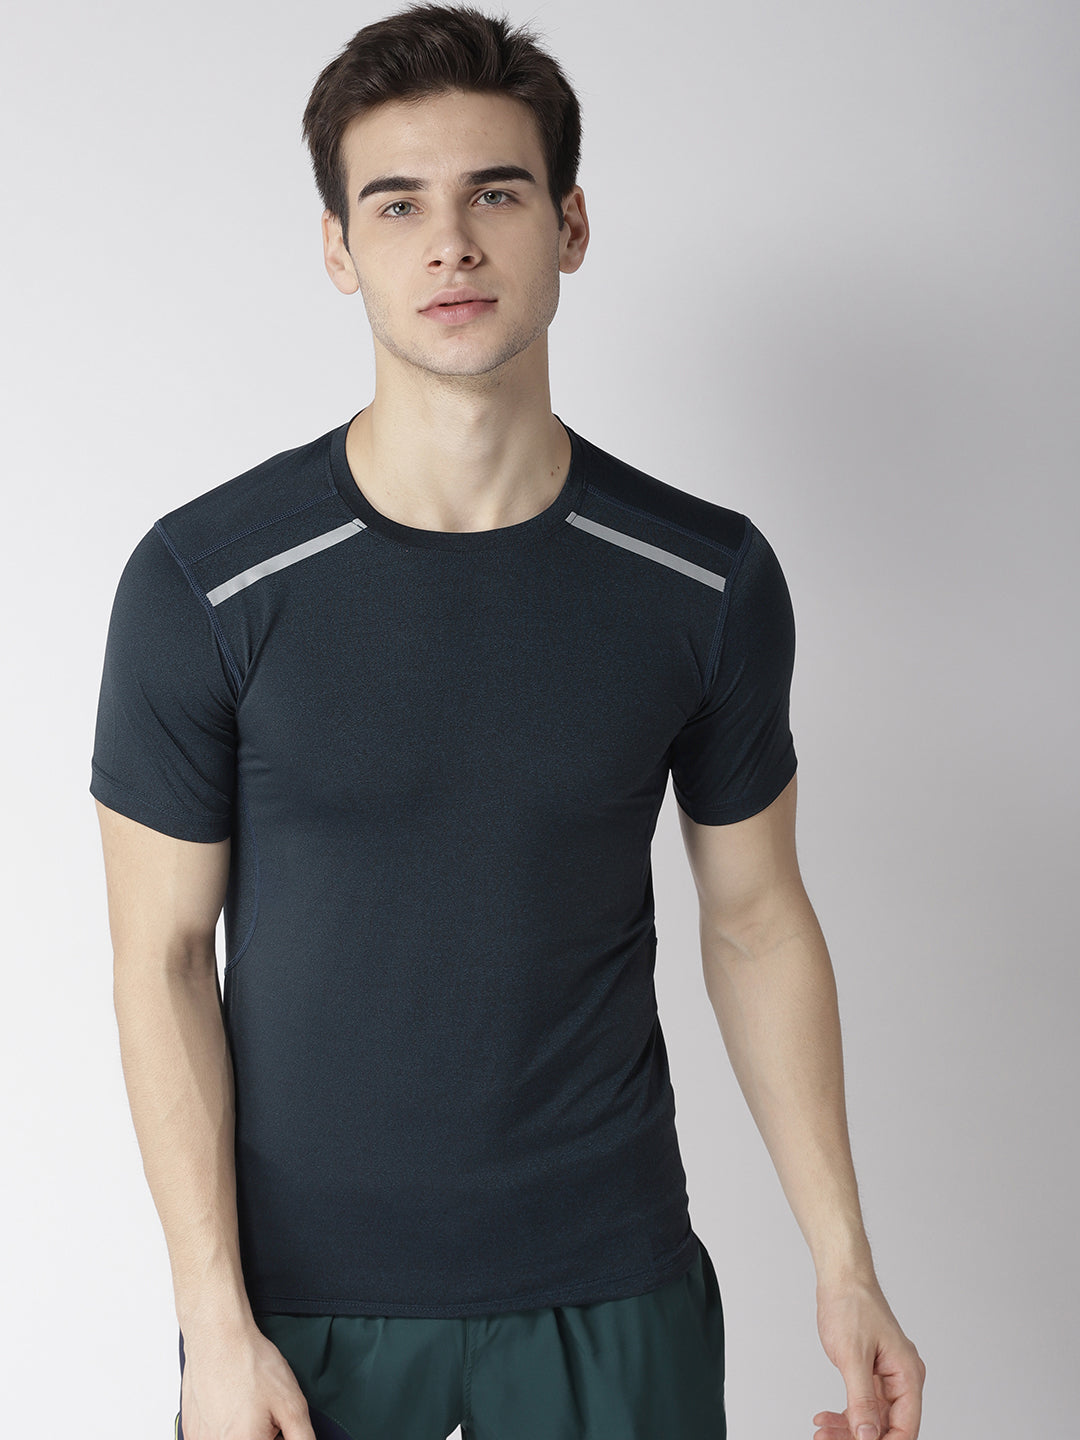 Mens Workout T-shirt